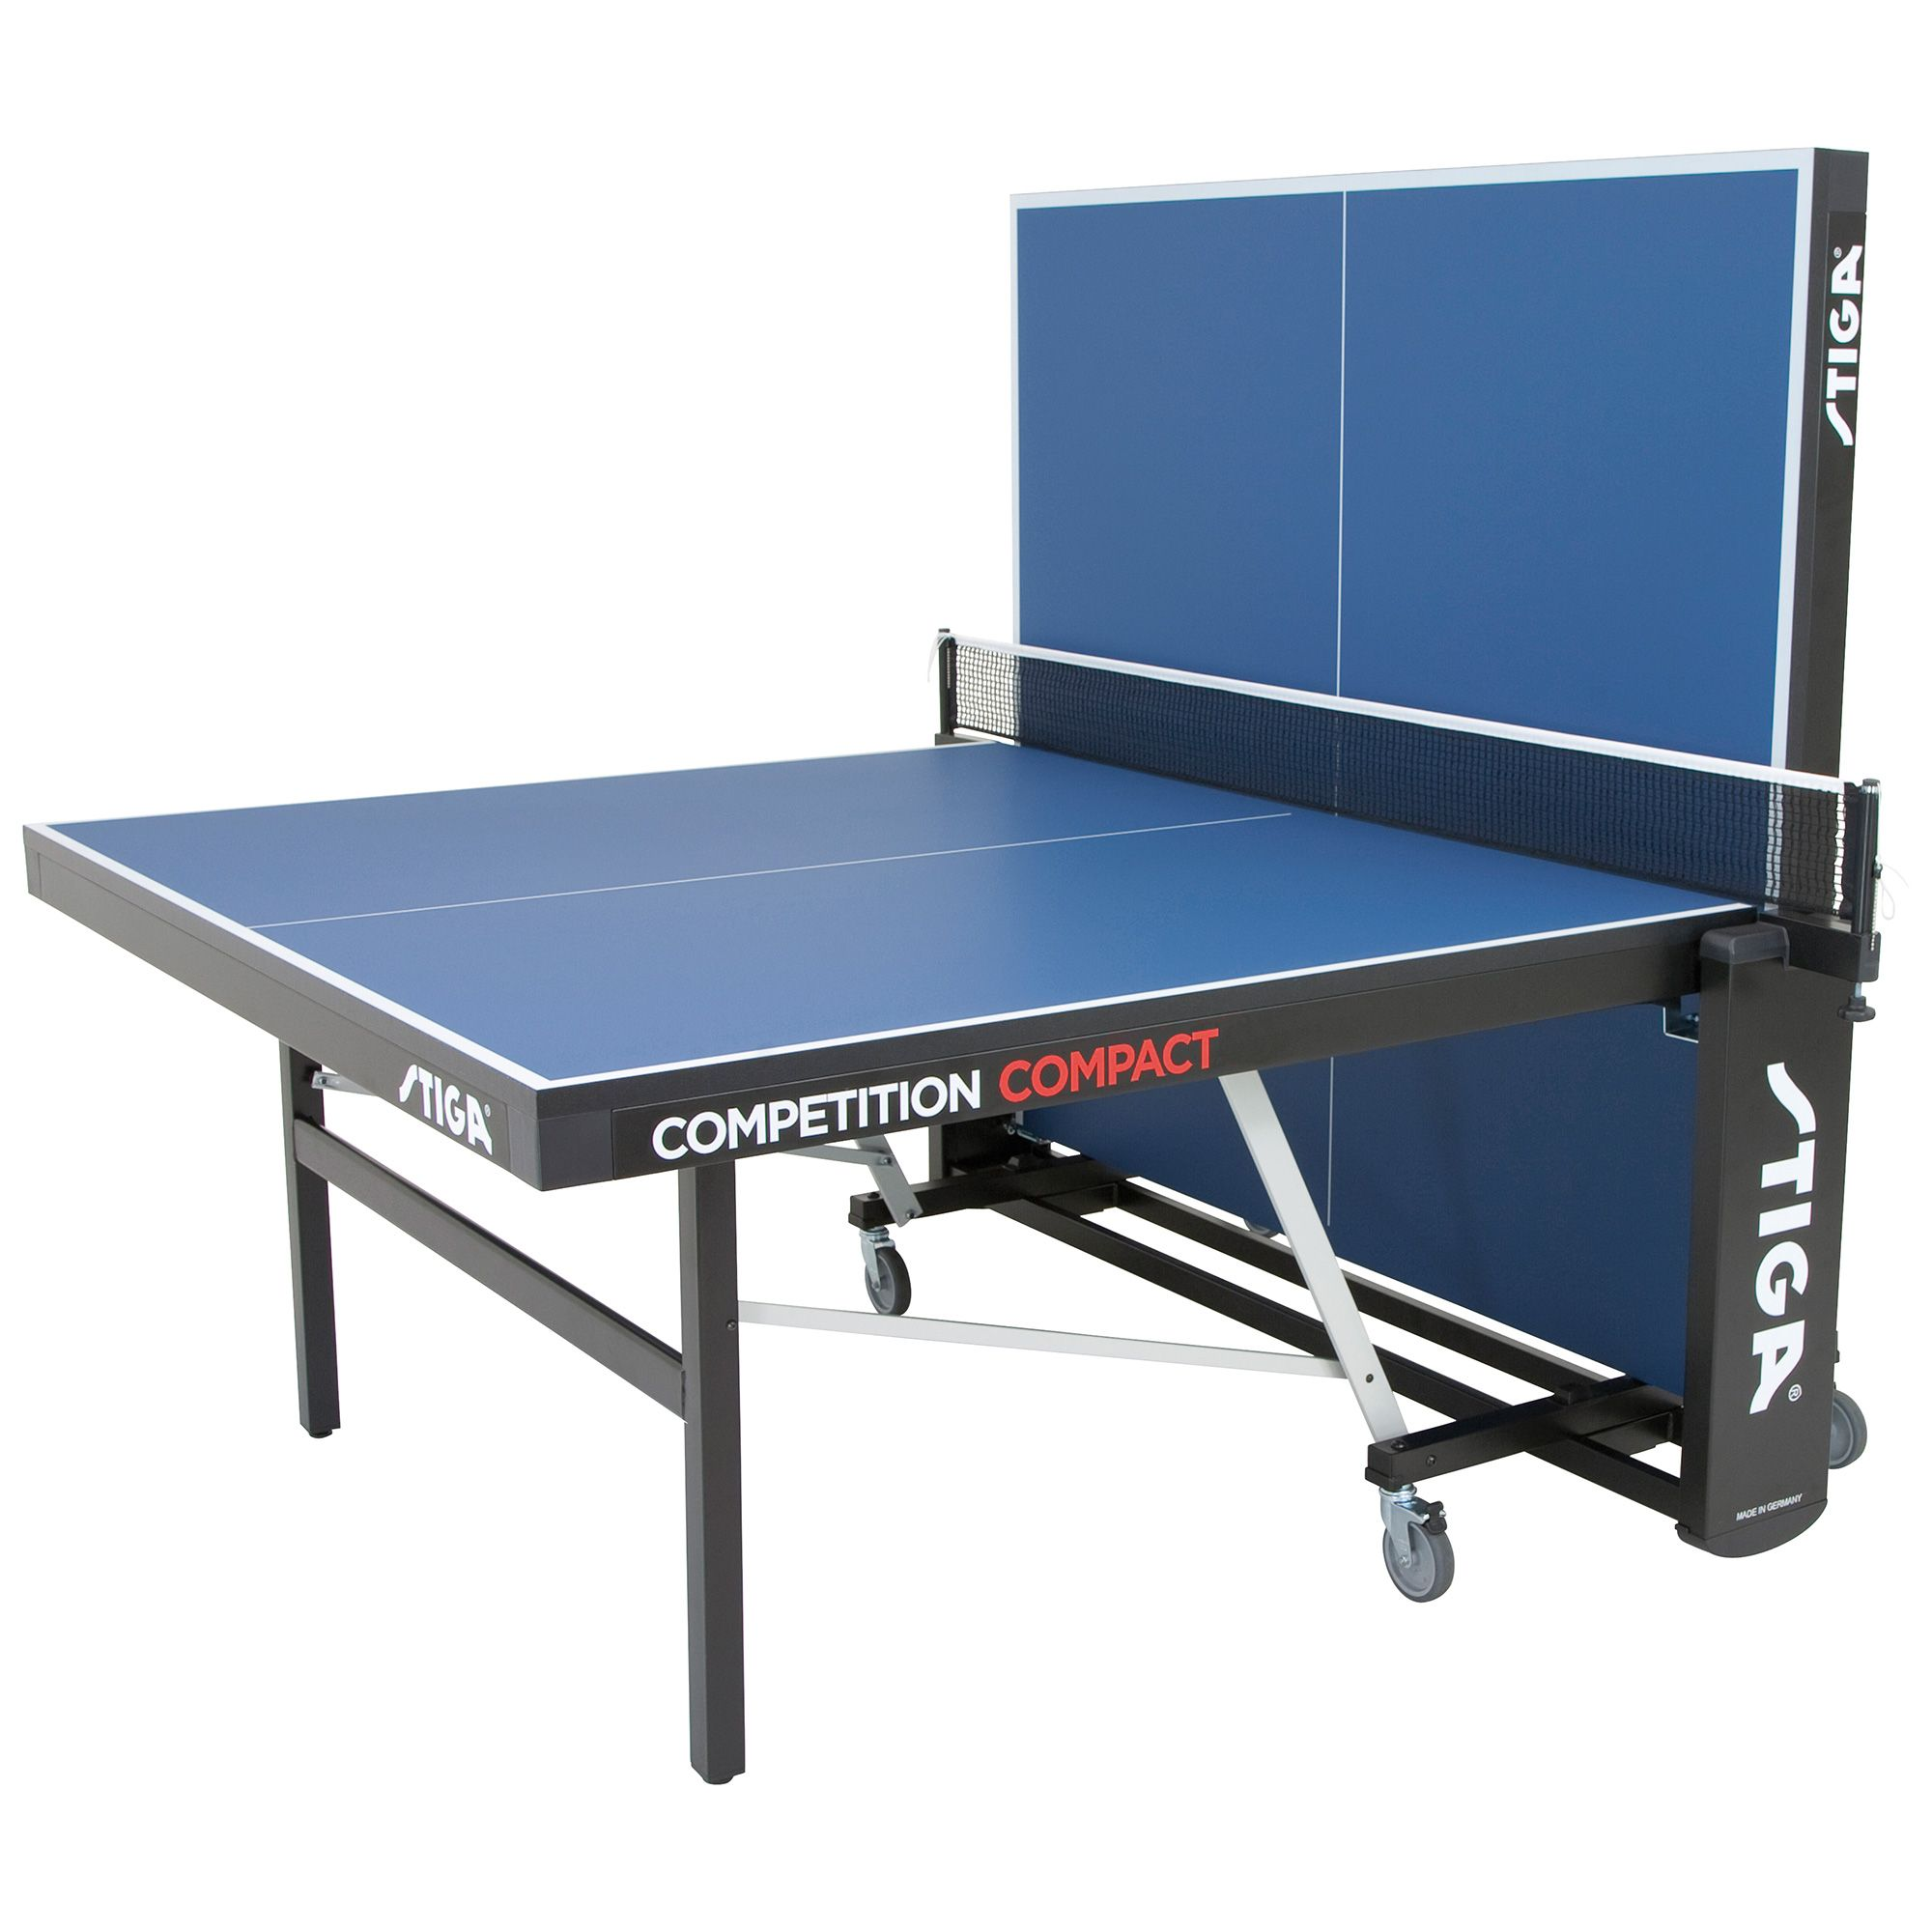 Stiga competition compact ittf indoor table tennis table - International table tennis federation ittf ...